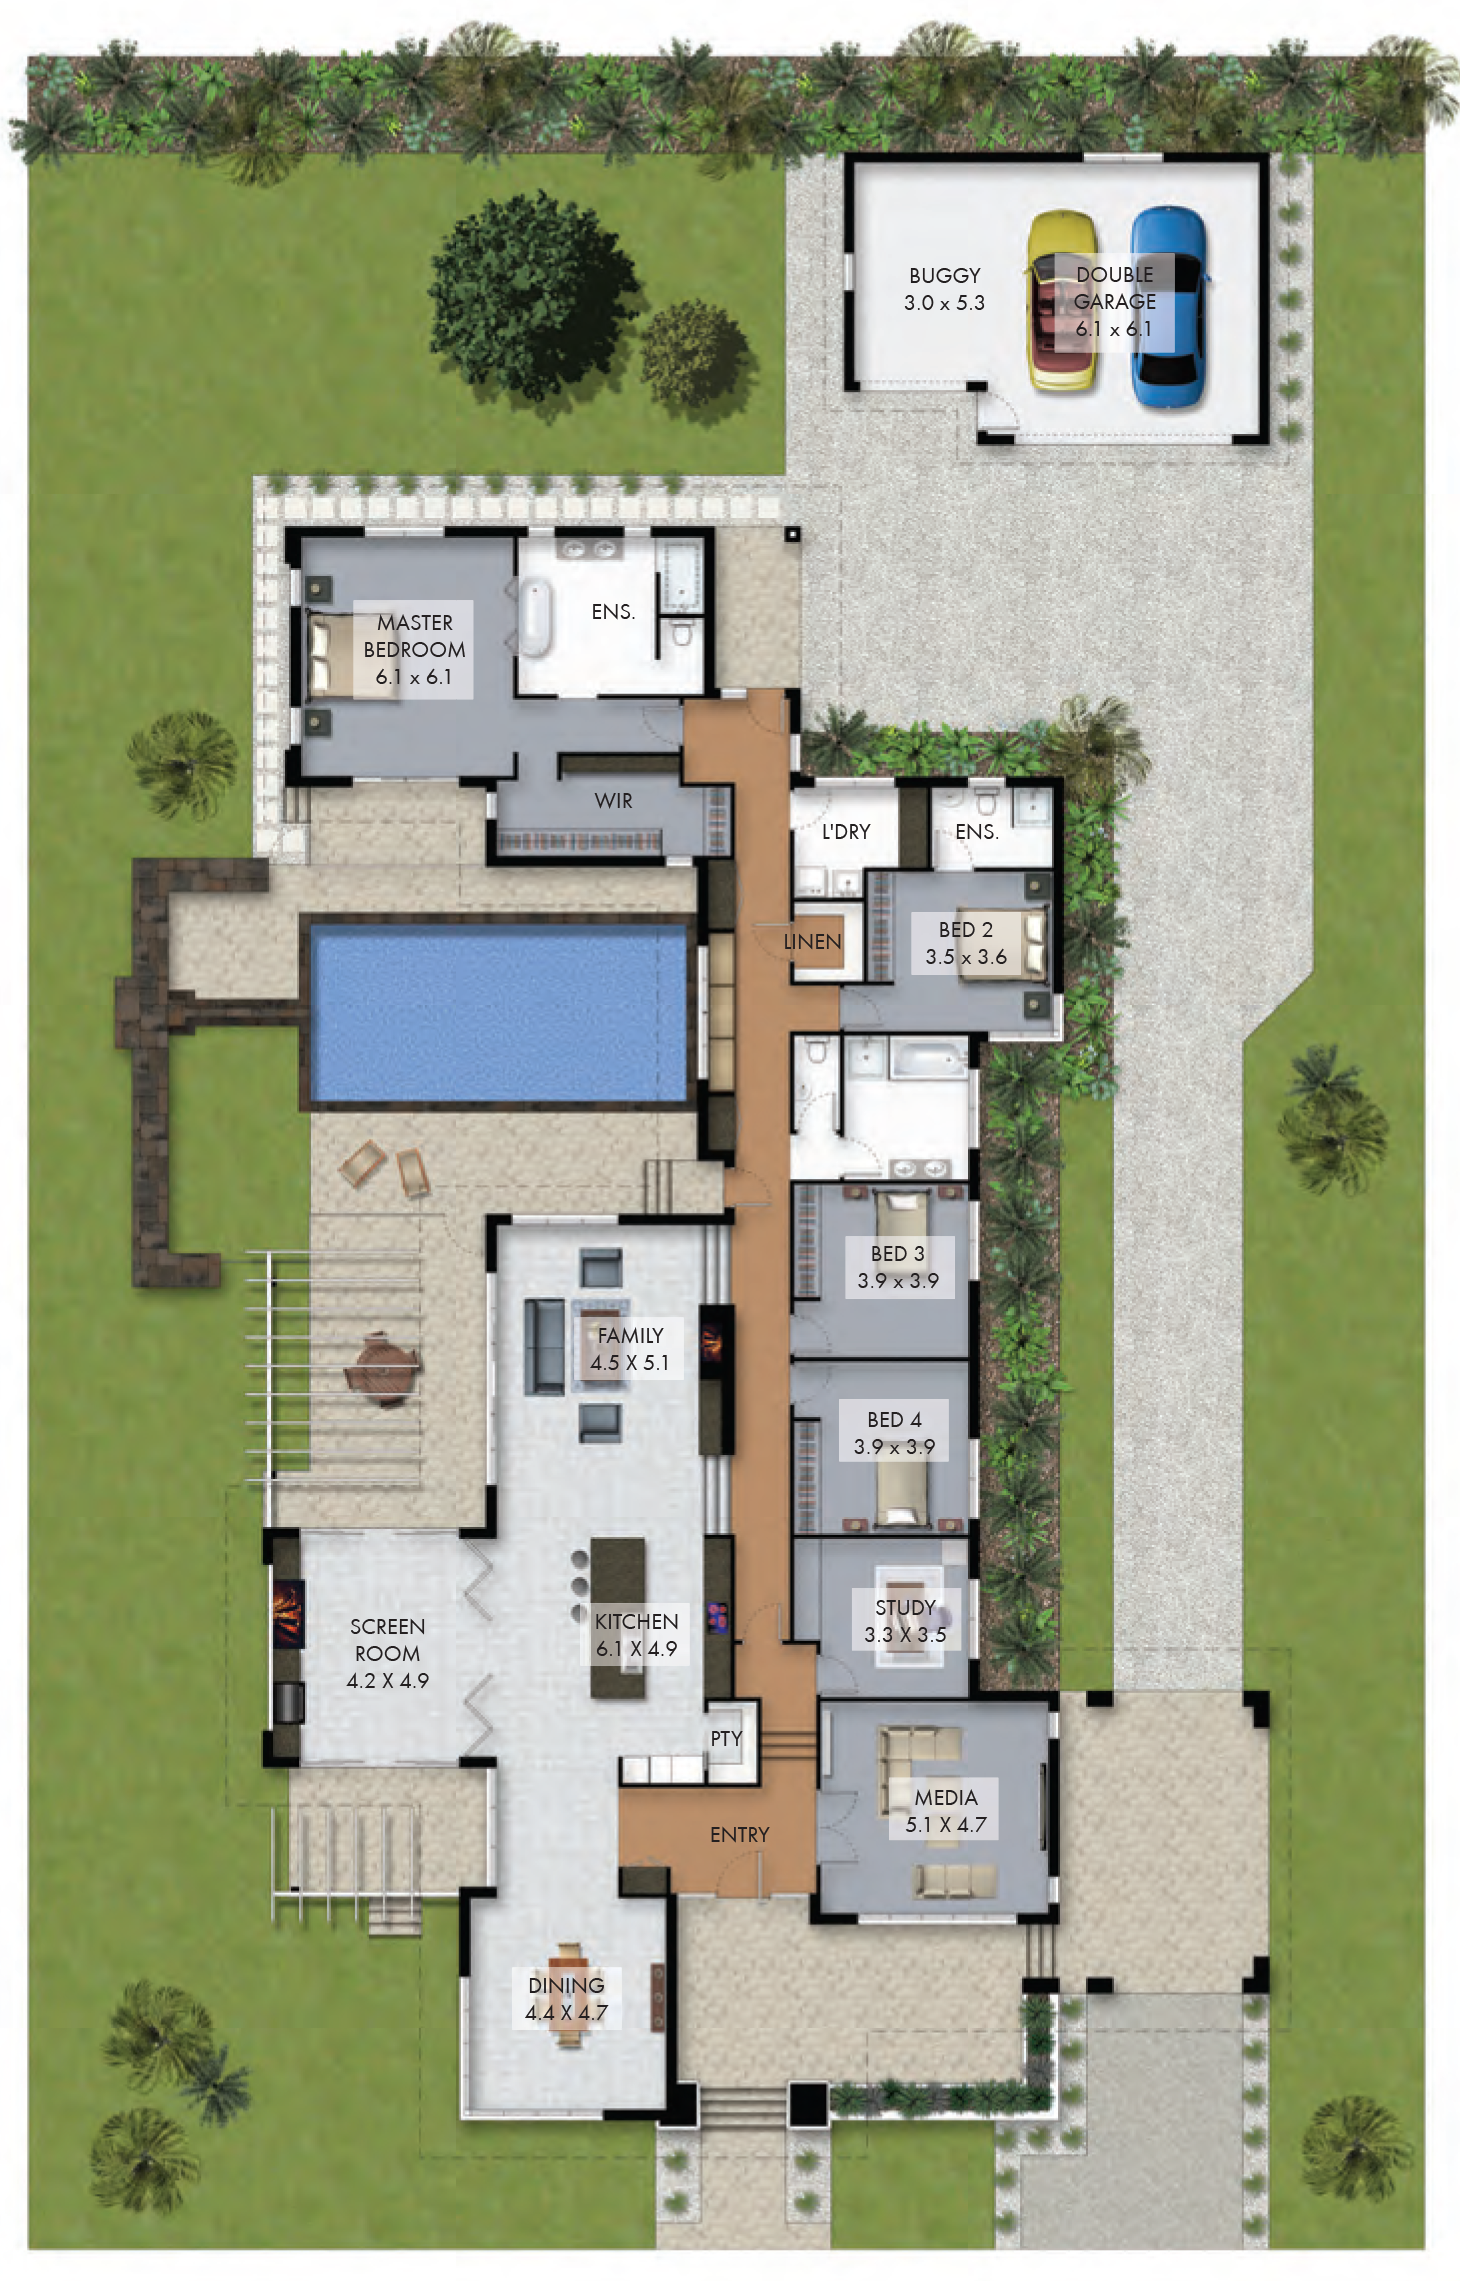 Modern House Plans With Pool Floor Plan Friday Luxury 4 Bedroom Family Home With Pool Floor